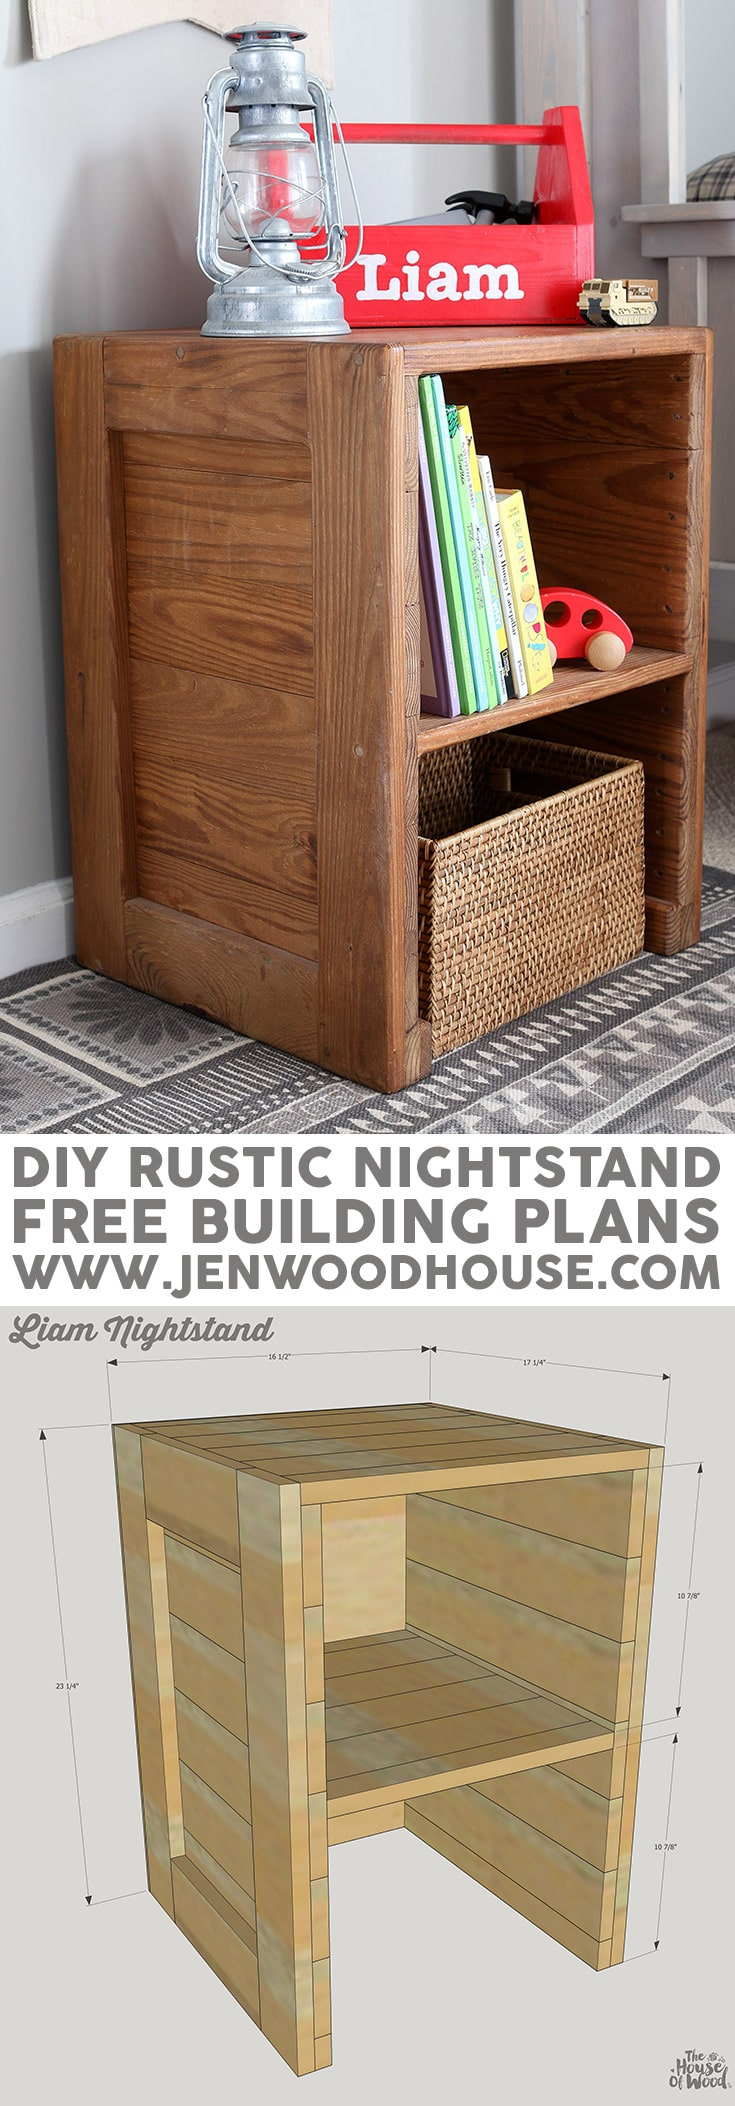 free plans: diy rustic nightstand Diy Rustic Nightstand